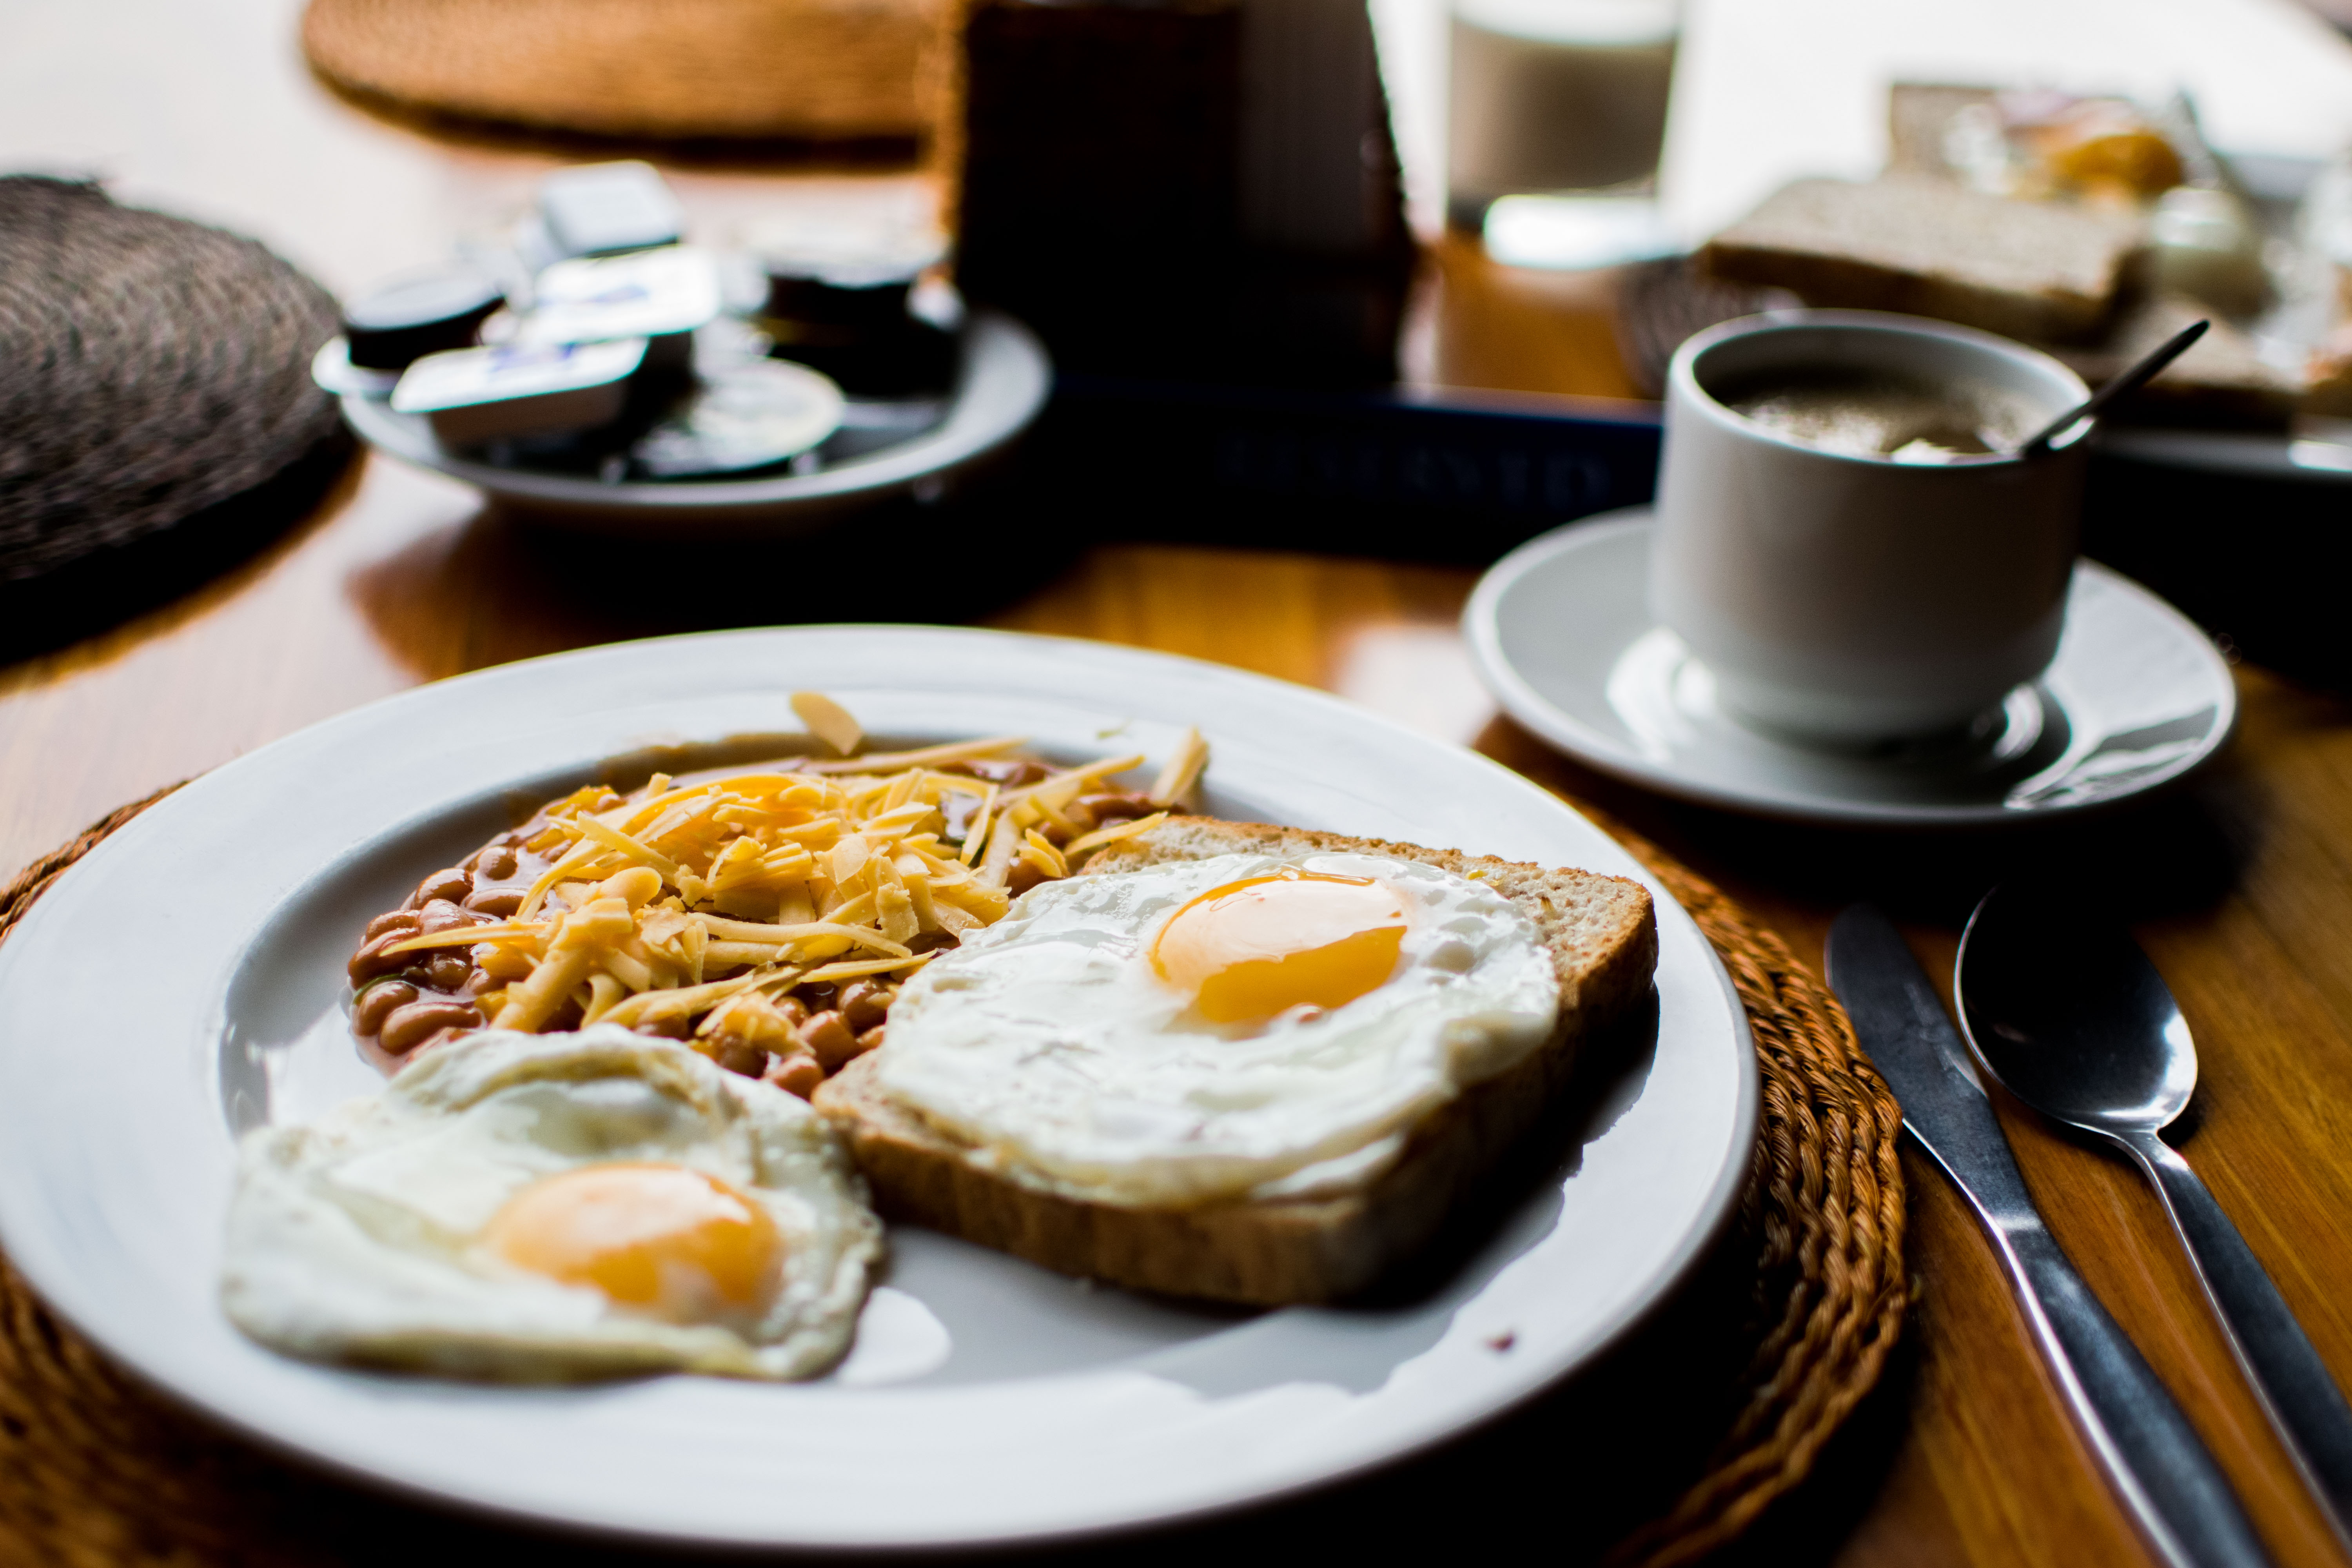 Eggs, toast, and beans as breakfast